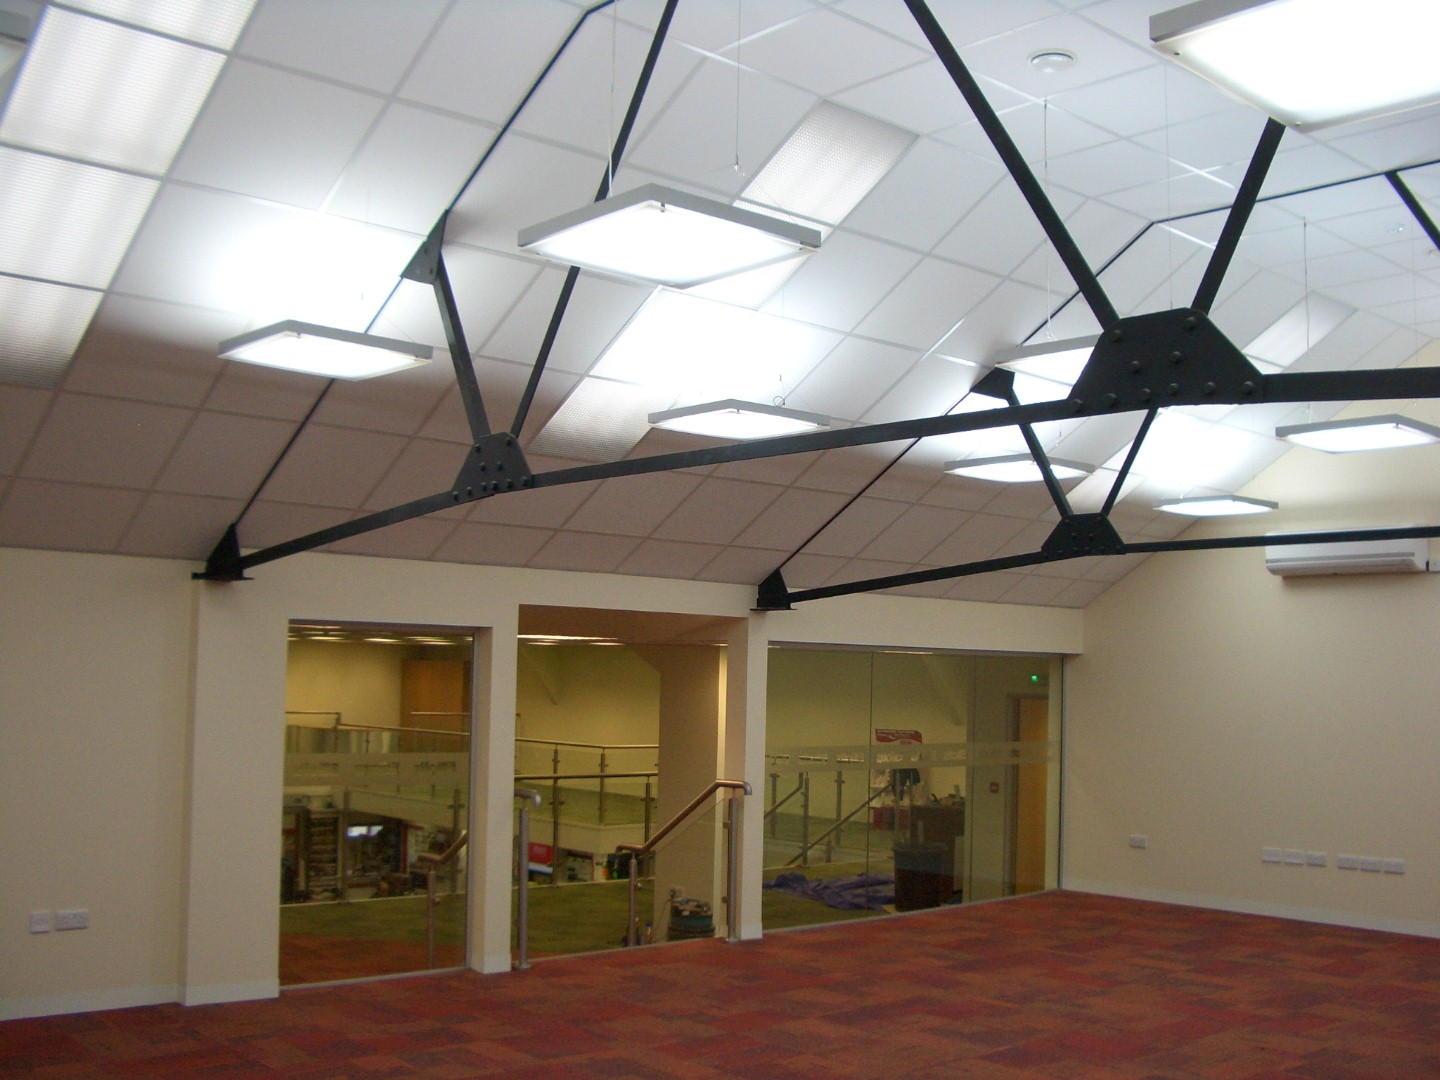 Ceilings mezzanine floor installation for Different kinds of ceiling design